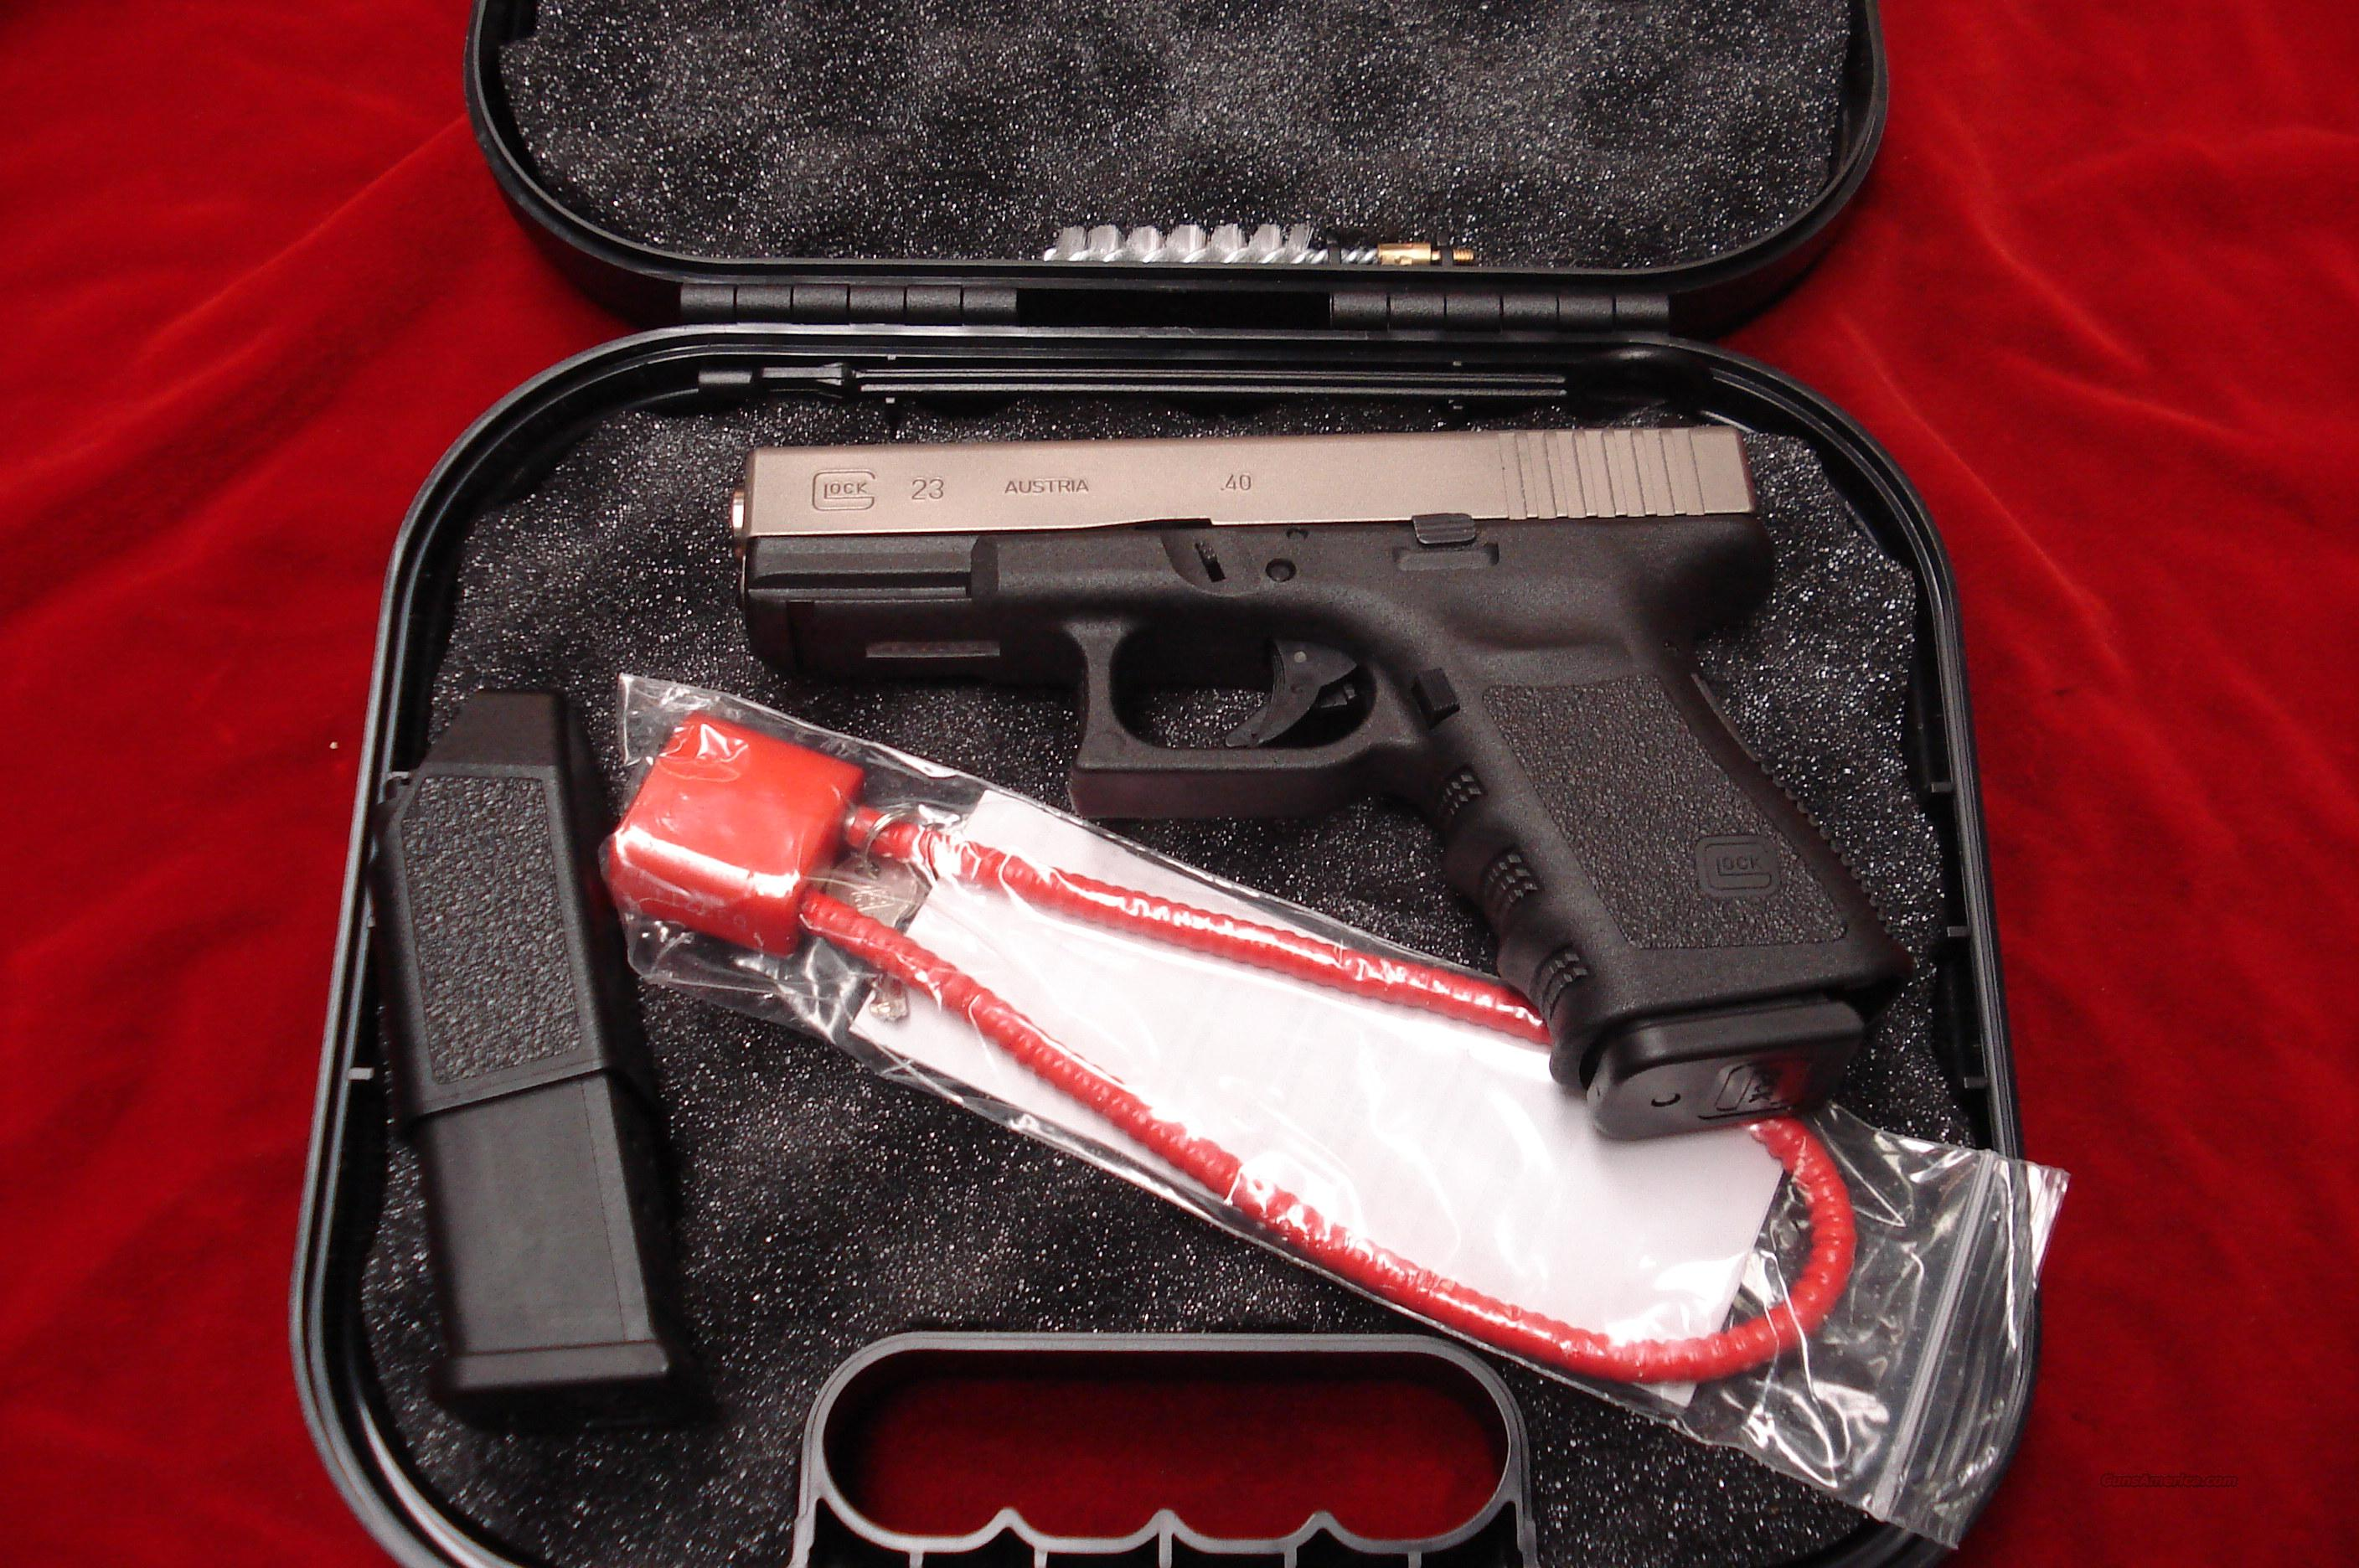 GLOCK MODEL 23 40CAL. NICKEL LNIB  Guns > Pistols > Glock Pistols > 23